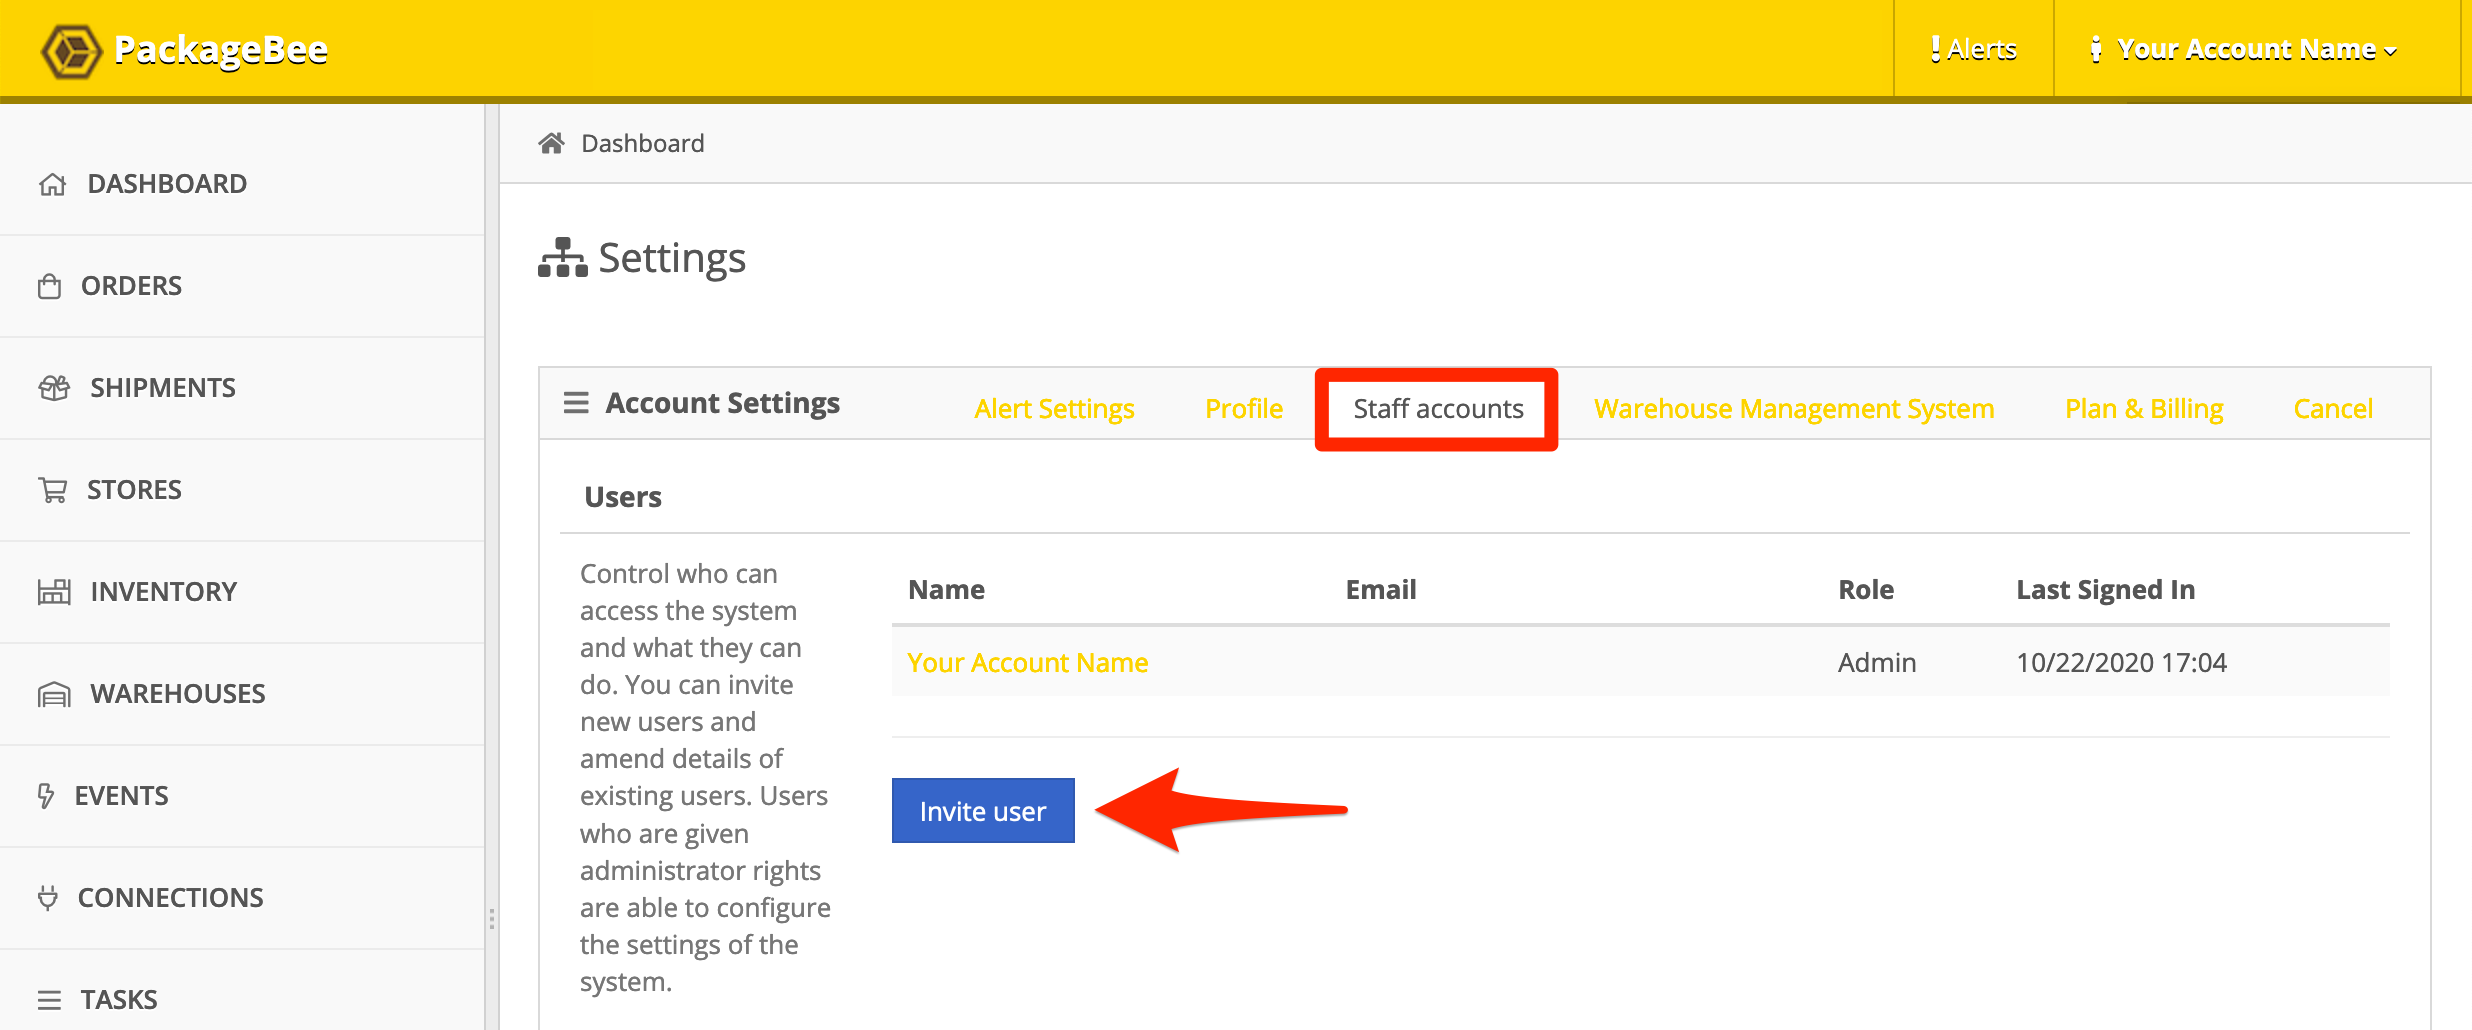 PackageBee Staff Account settings